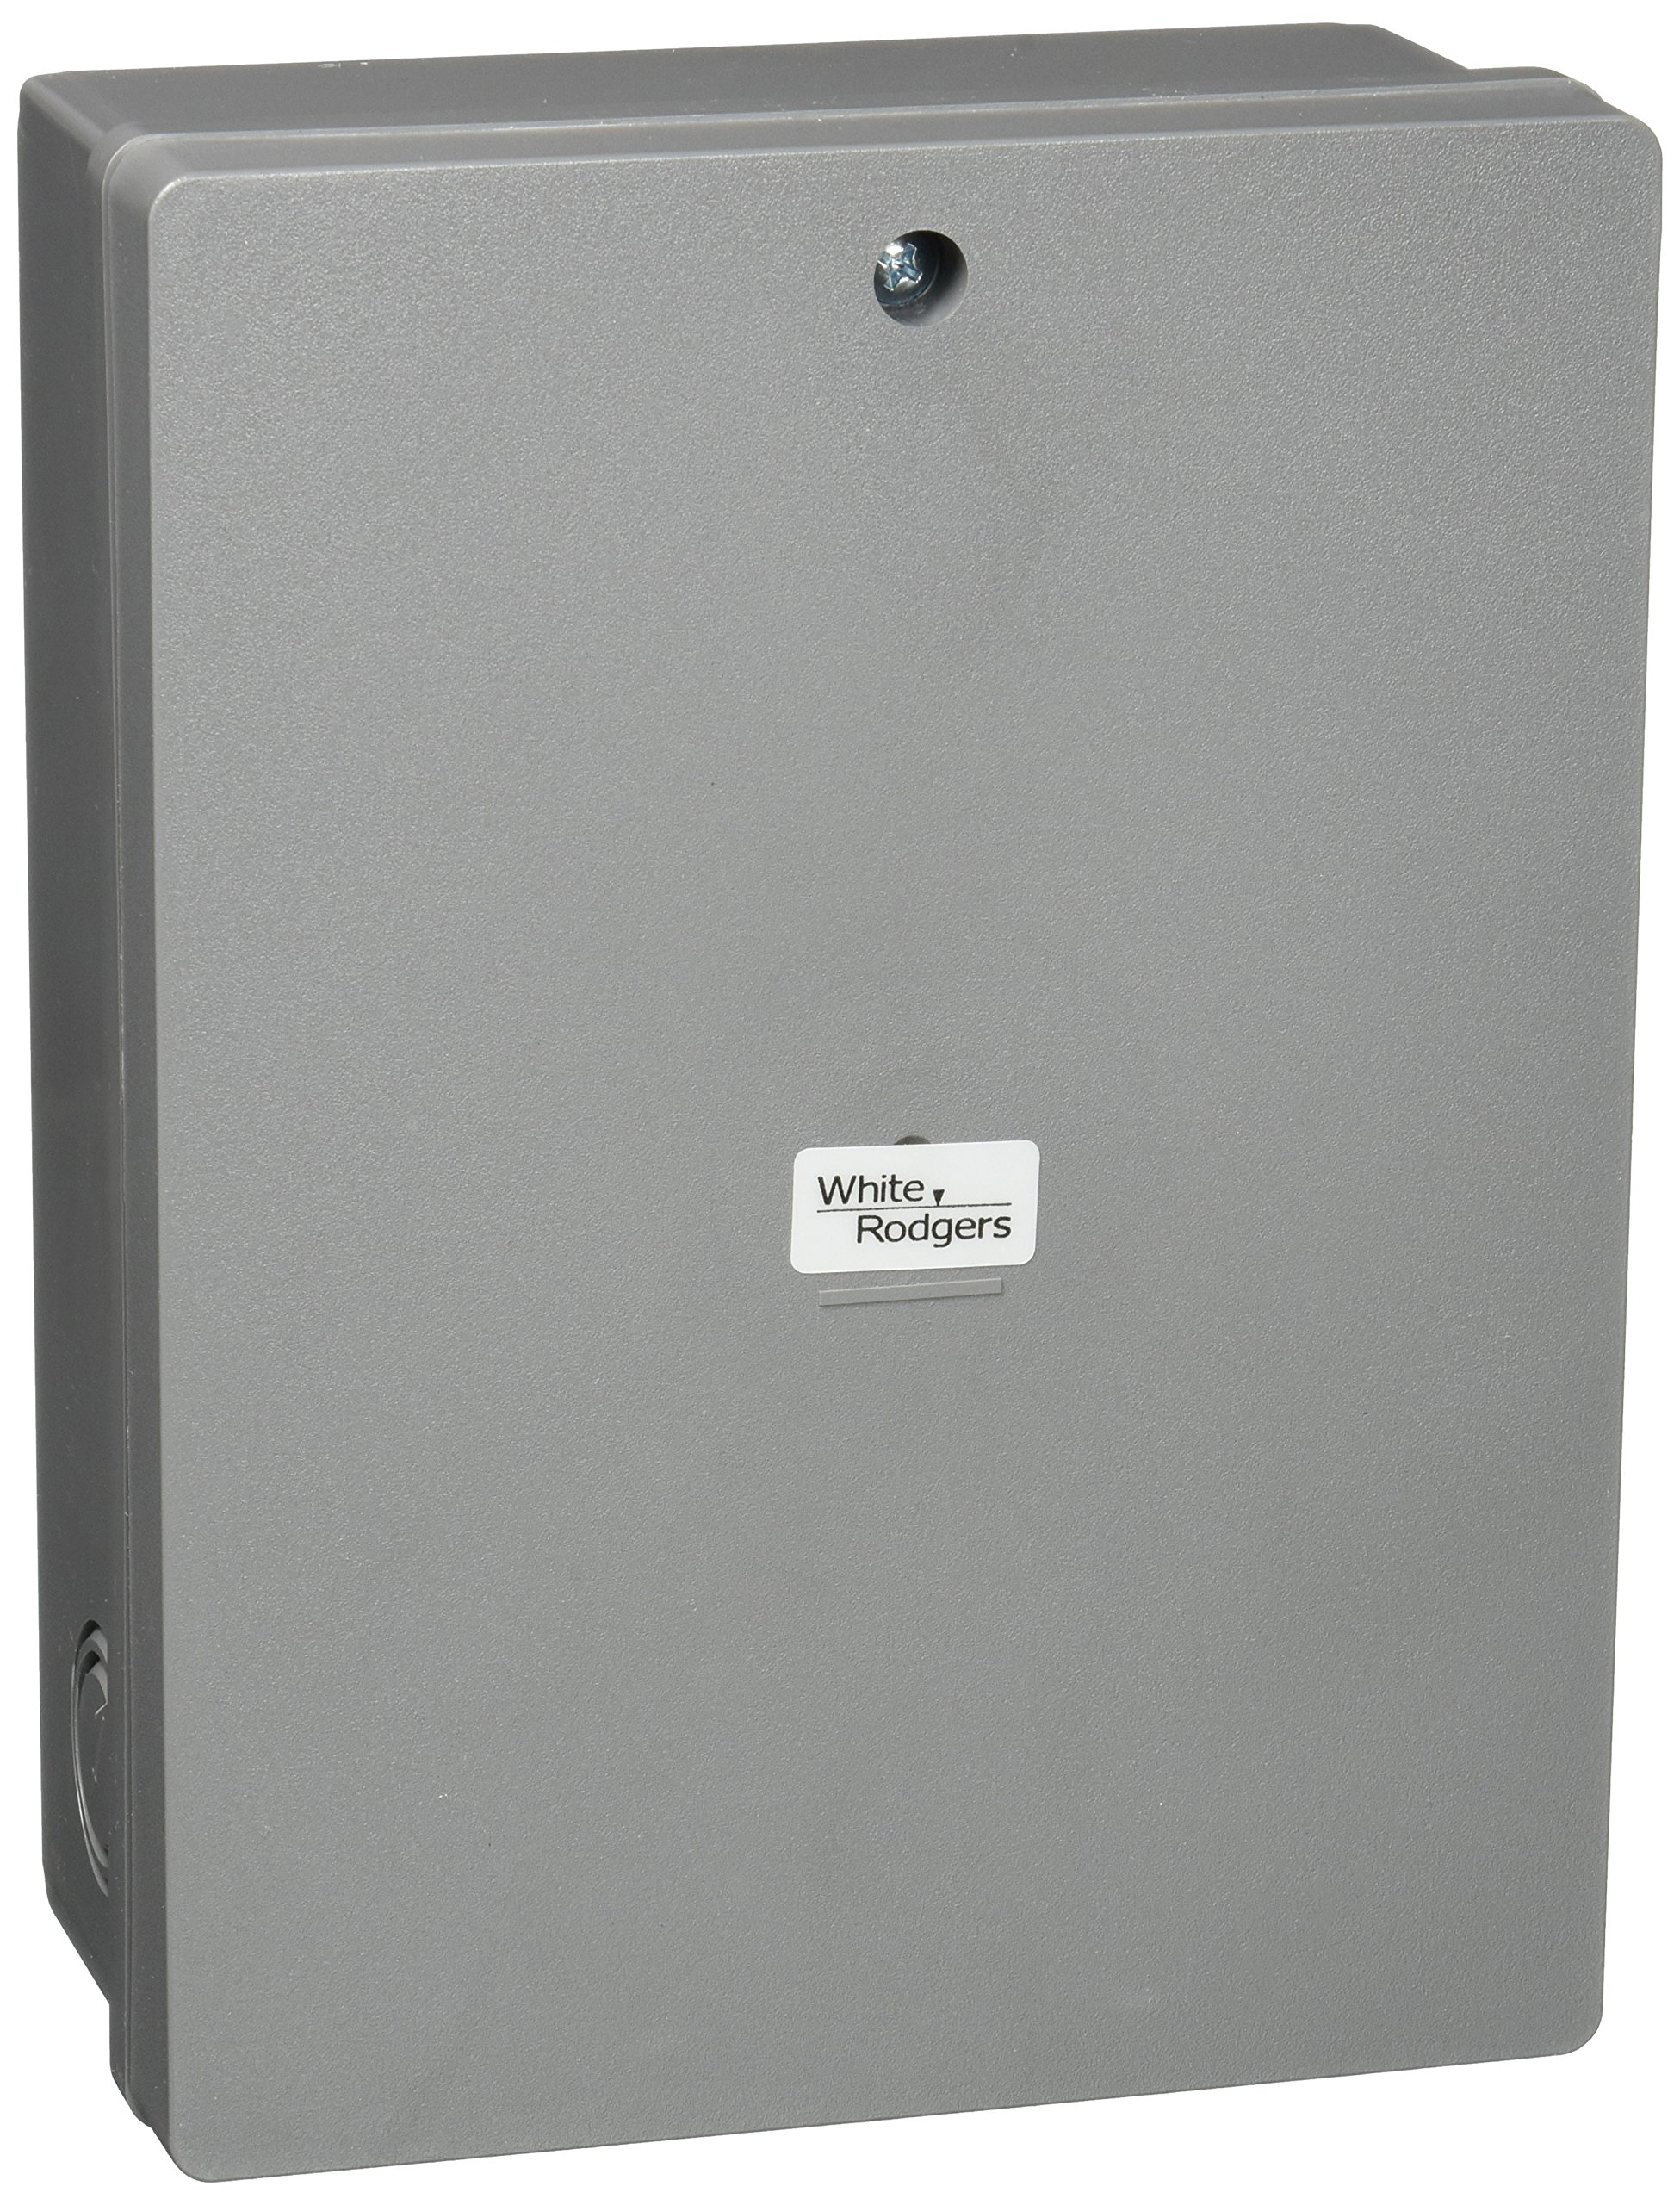 Emerson 21D28-6 Evaporative Cooling Thermostat & Control Box by Emerson Thermostats